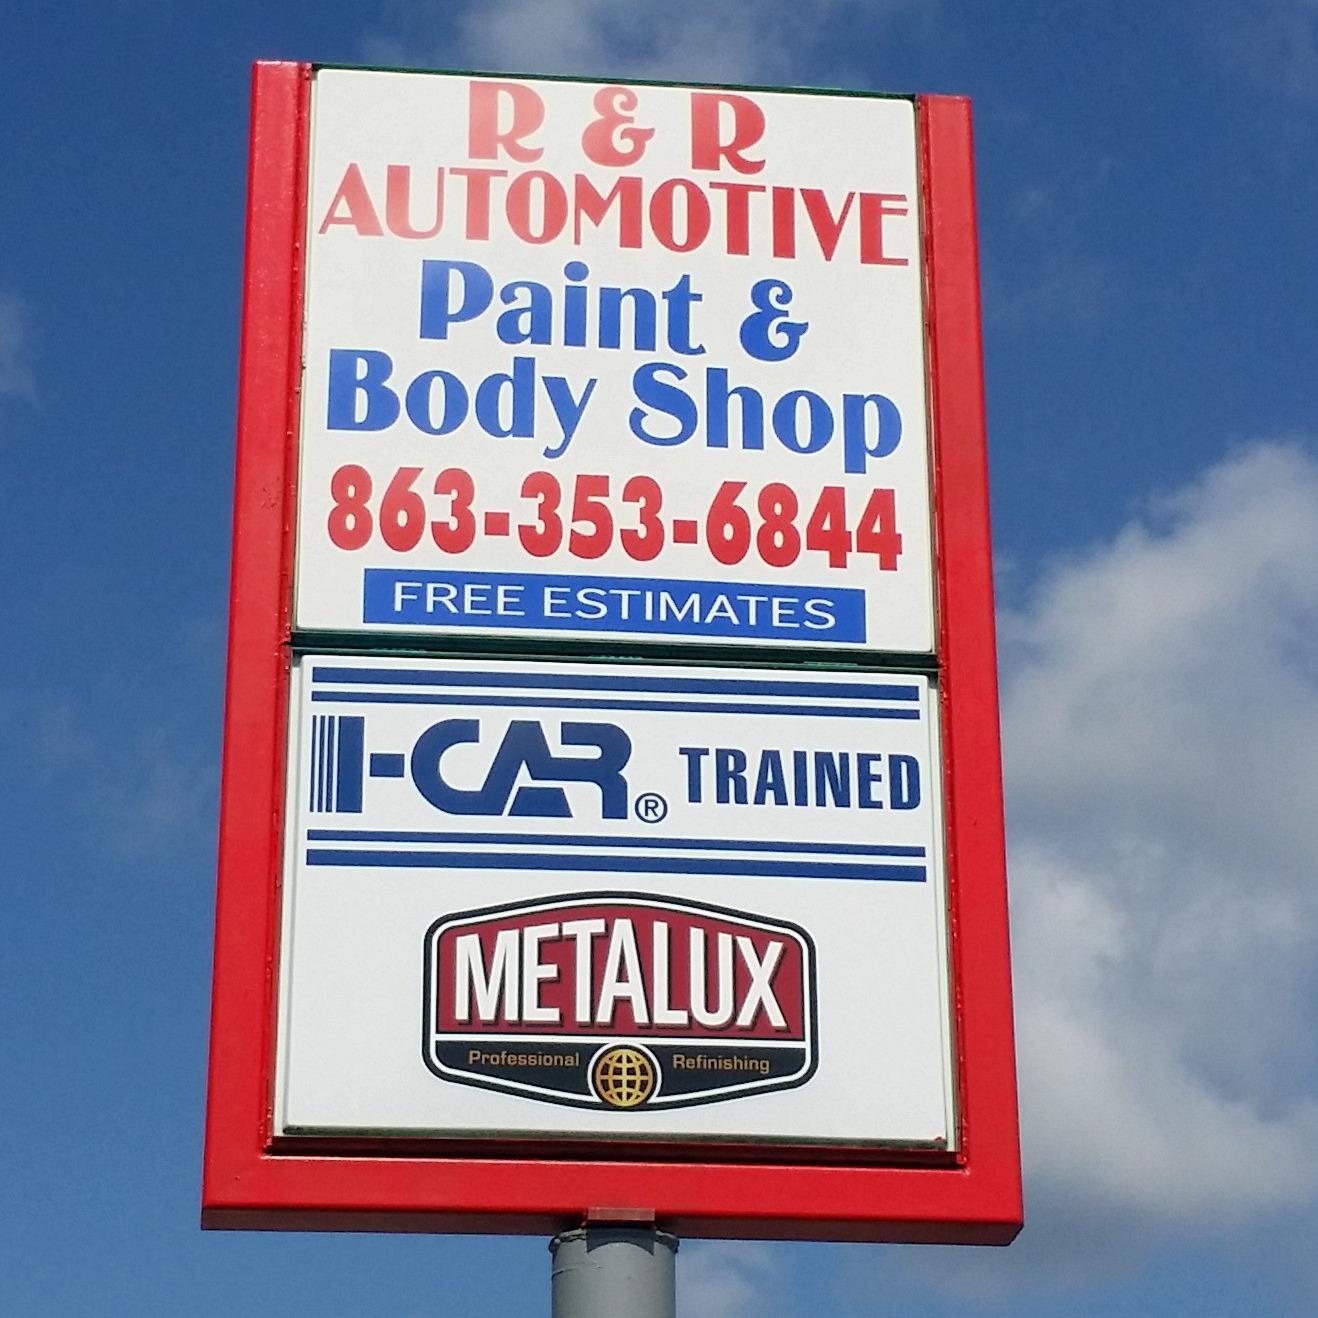 A&N AUTOMOTIVE PAINT & BODY SHOP Coupons near me in Haines ...